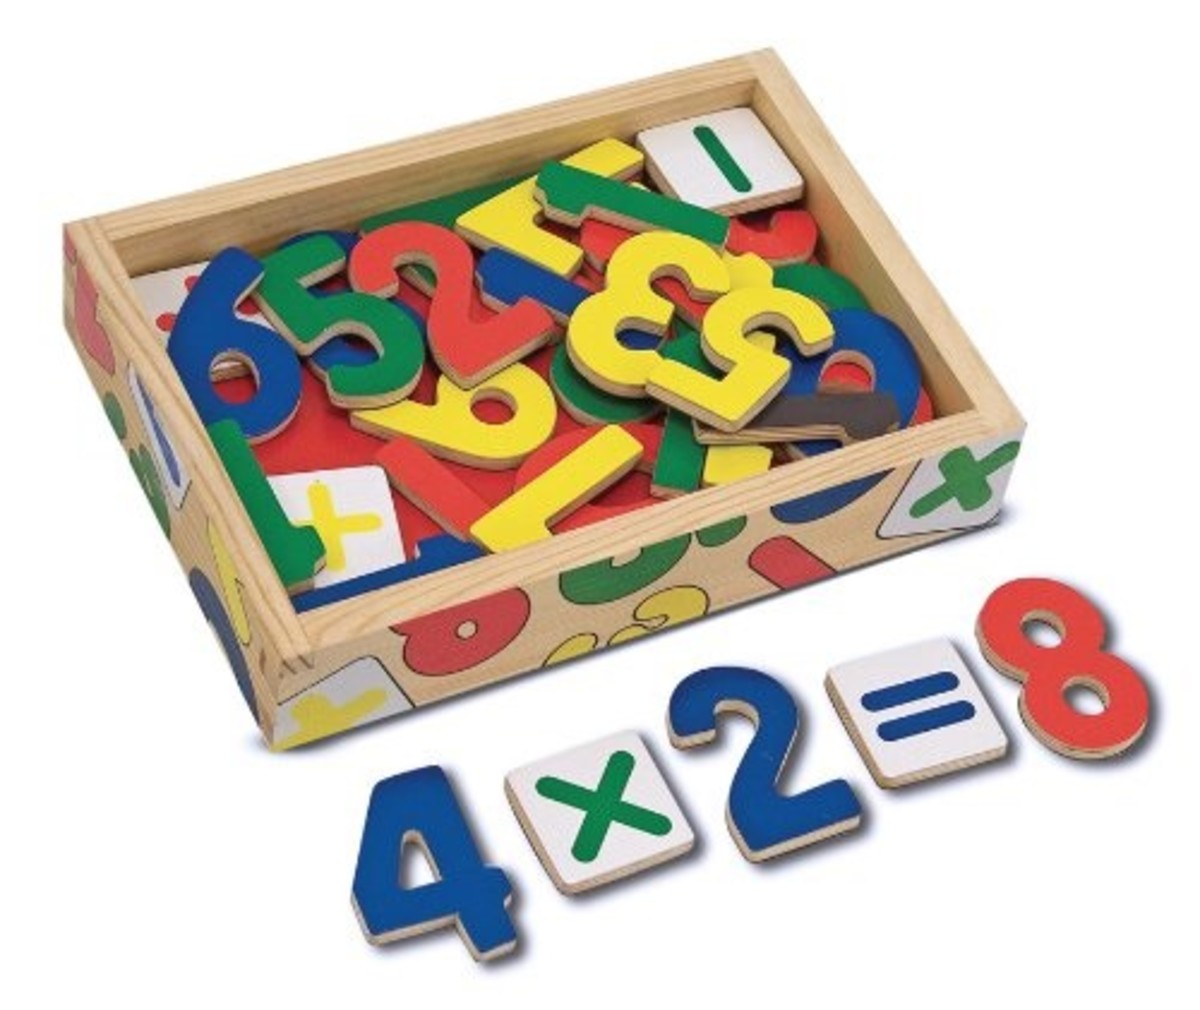 Looking for well reviewed magnetic wooden numbers? Here they are!